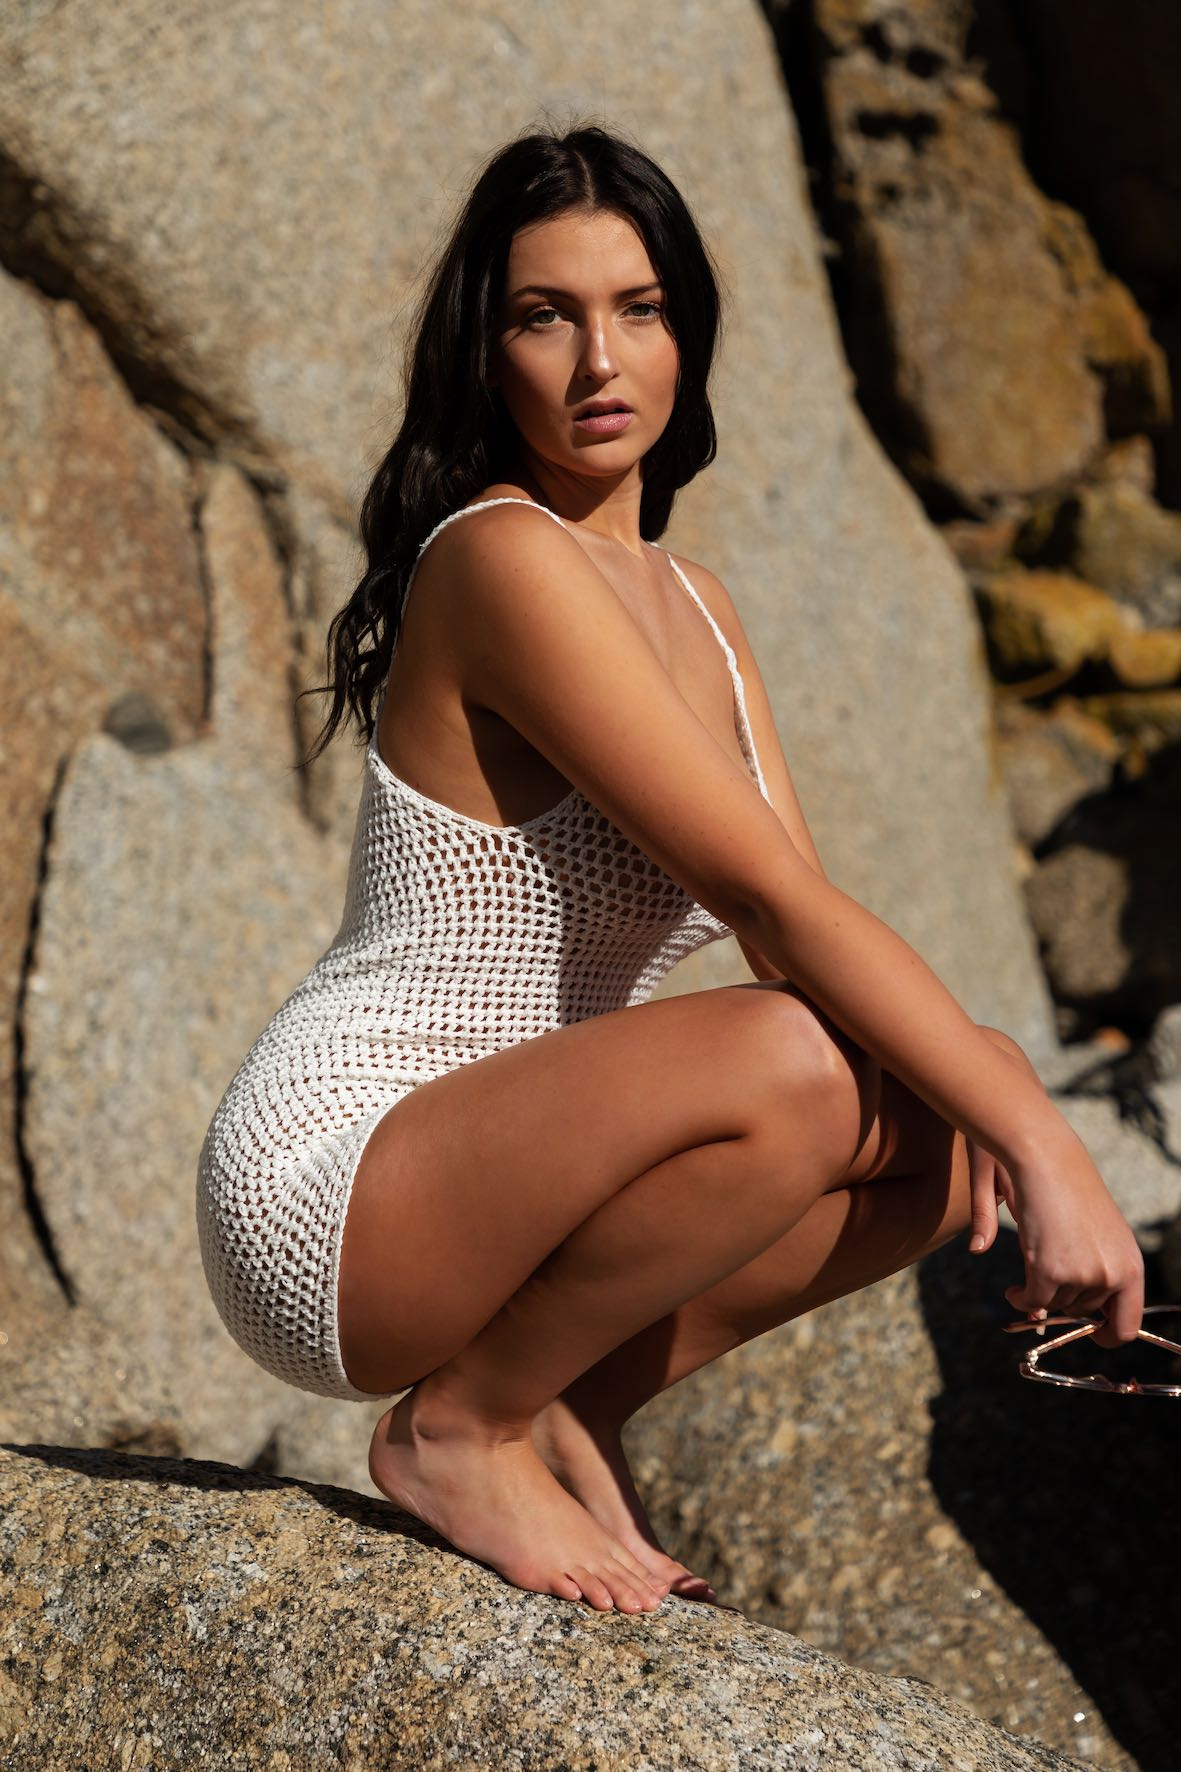 Meet Dominique Wagner in our South African Girls feature